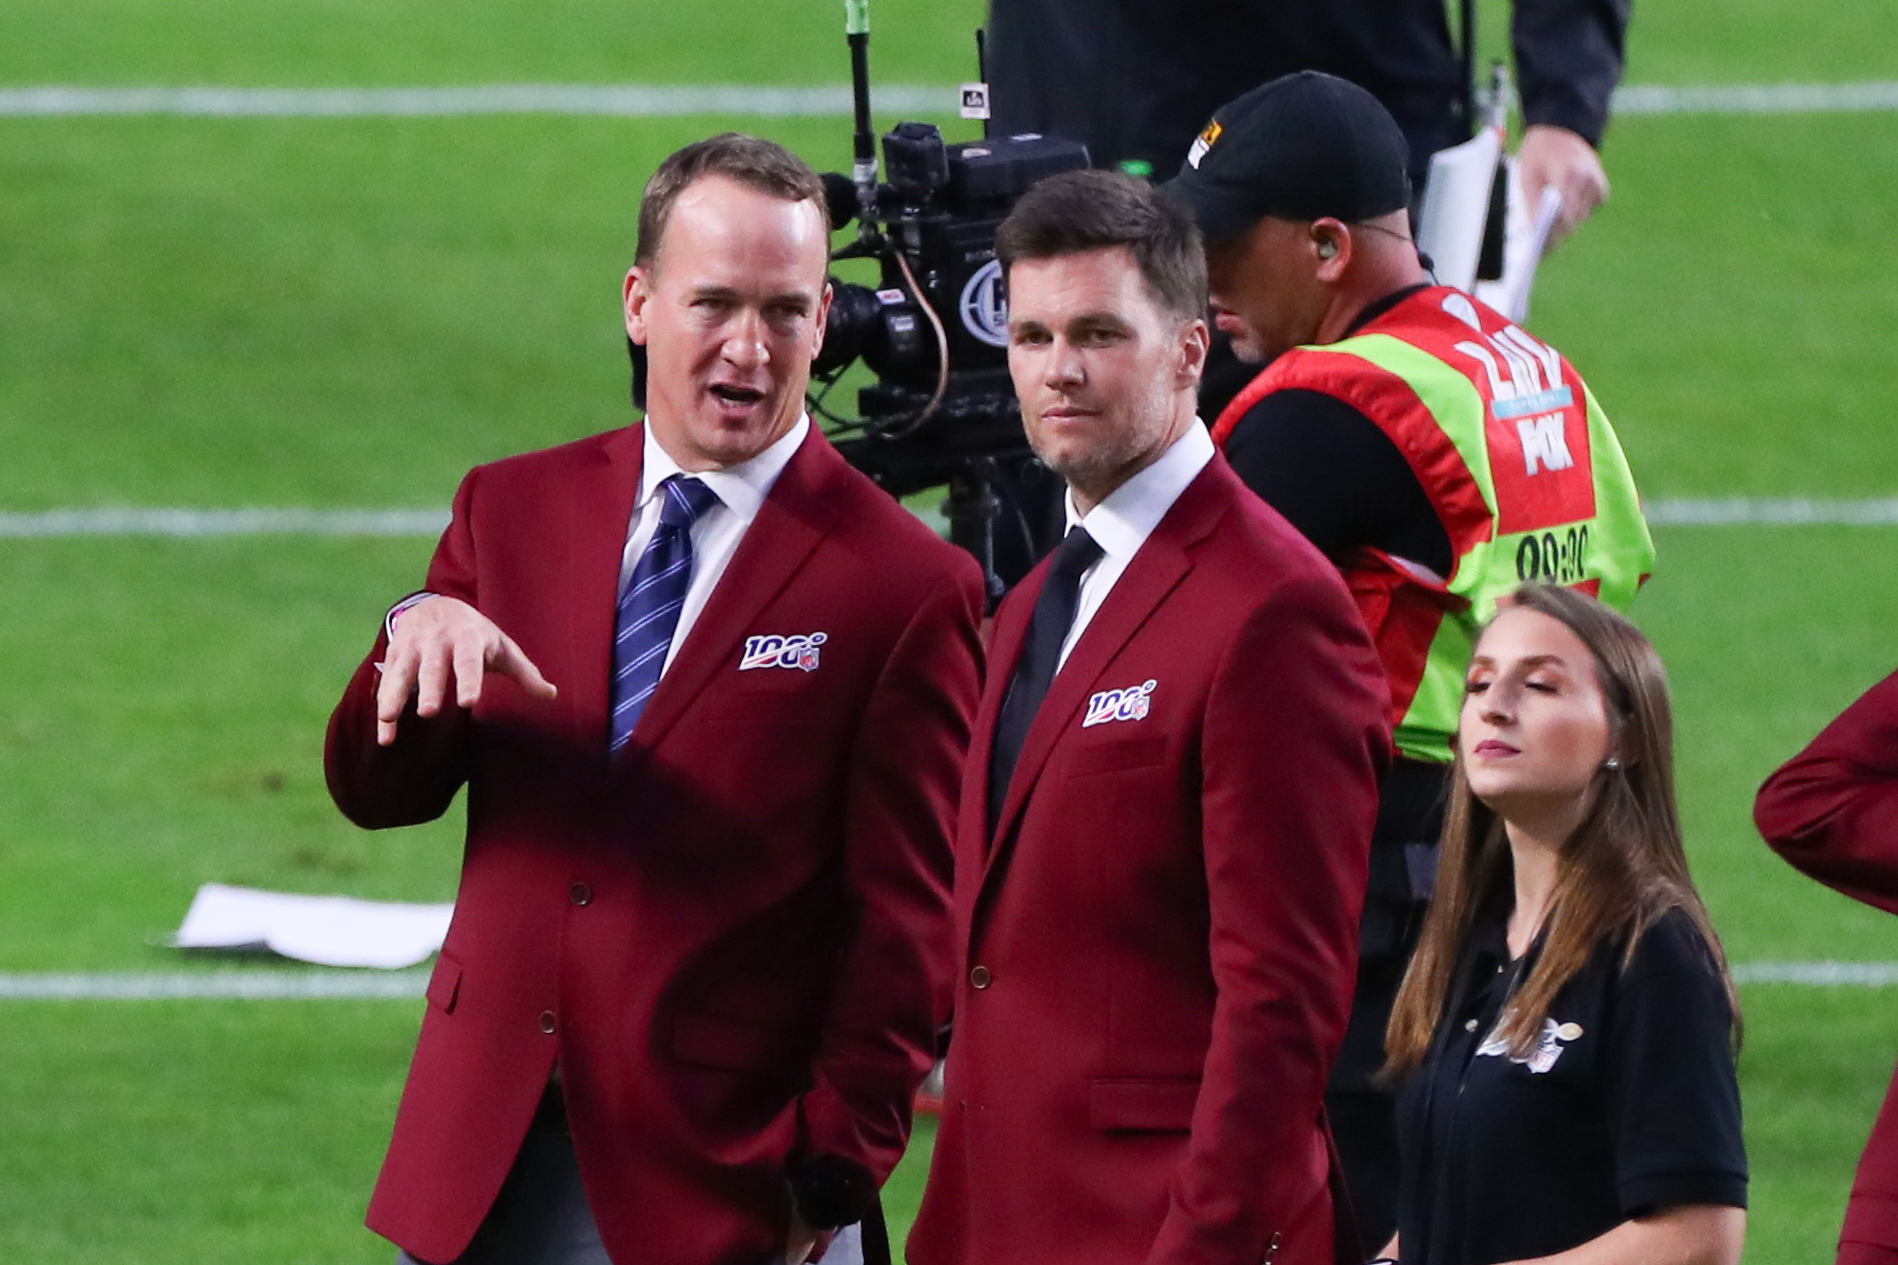 MIAMI GARDENS, FL - FEBRUARY 02: Tom Brady and Peyton Manning talk on the field during the 100 year team celebration prior to Super Bowl LIV on February 2, 2020 at Hard Rock Stadium in Miami Gardens, FL. (Photo by Rich Graessle/PPI/Icon Sportswire via Getty Images)